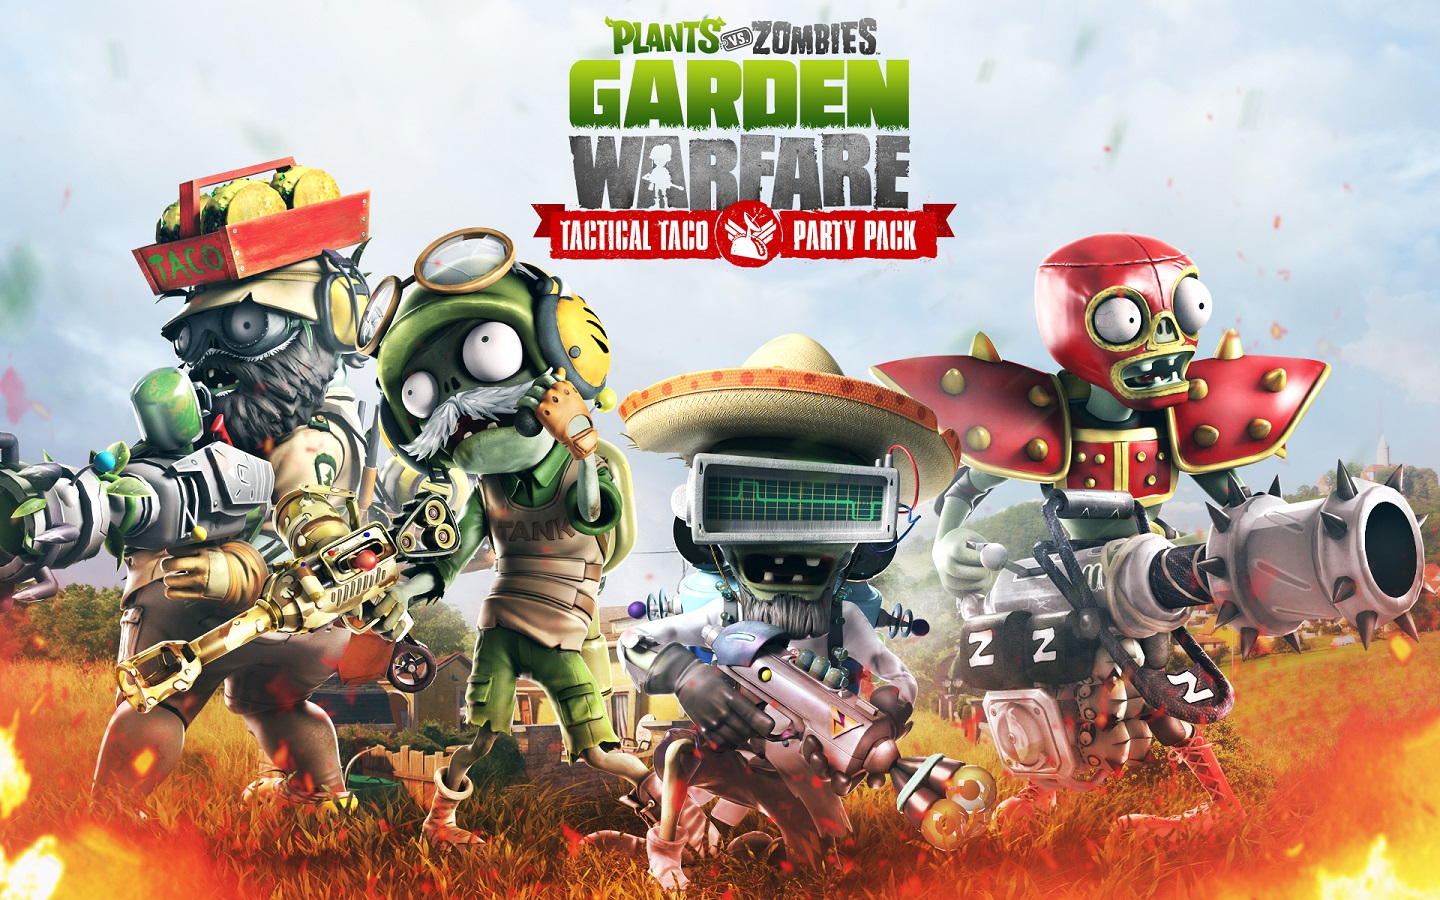 Co optimus screens garden warfare 39 s 39 tactical taco - Plants vs zombies garden warfare xbox one ...